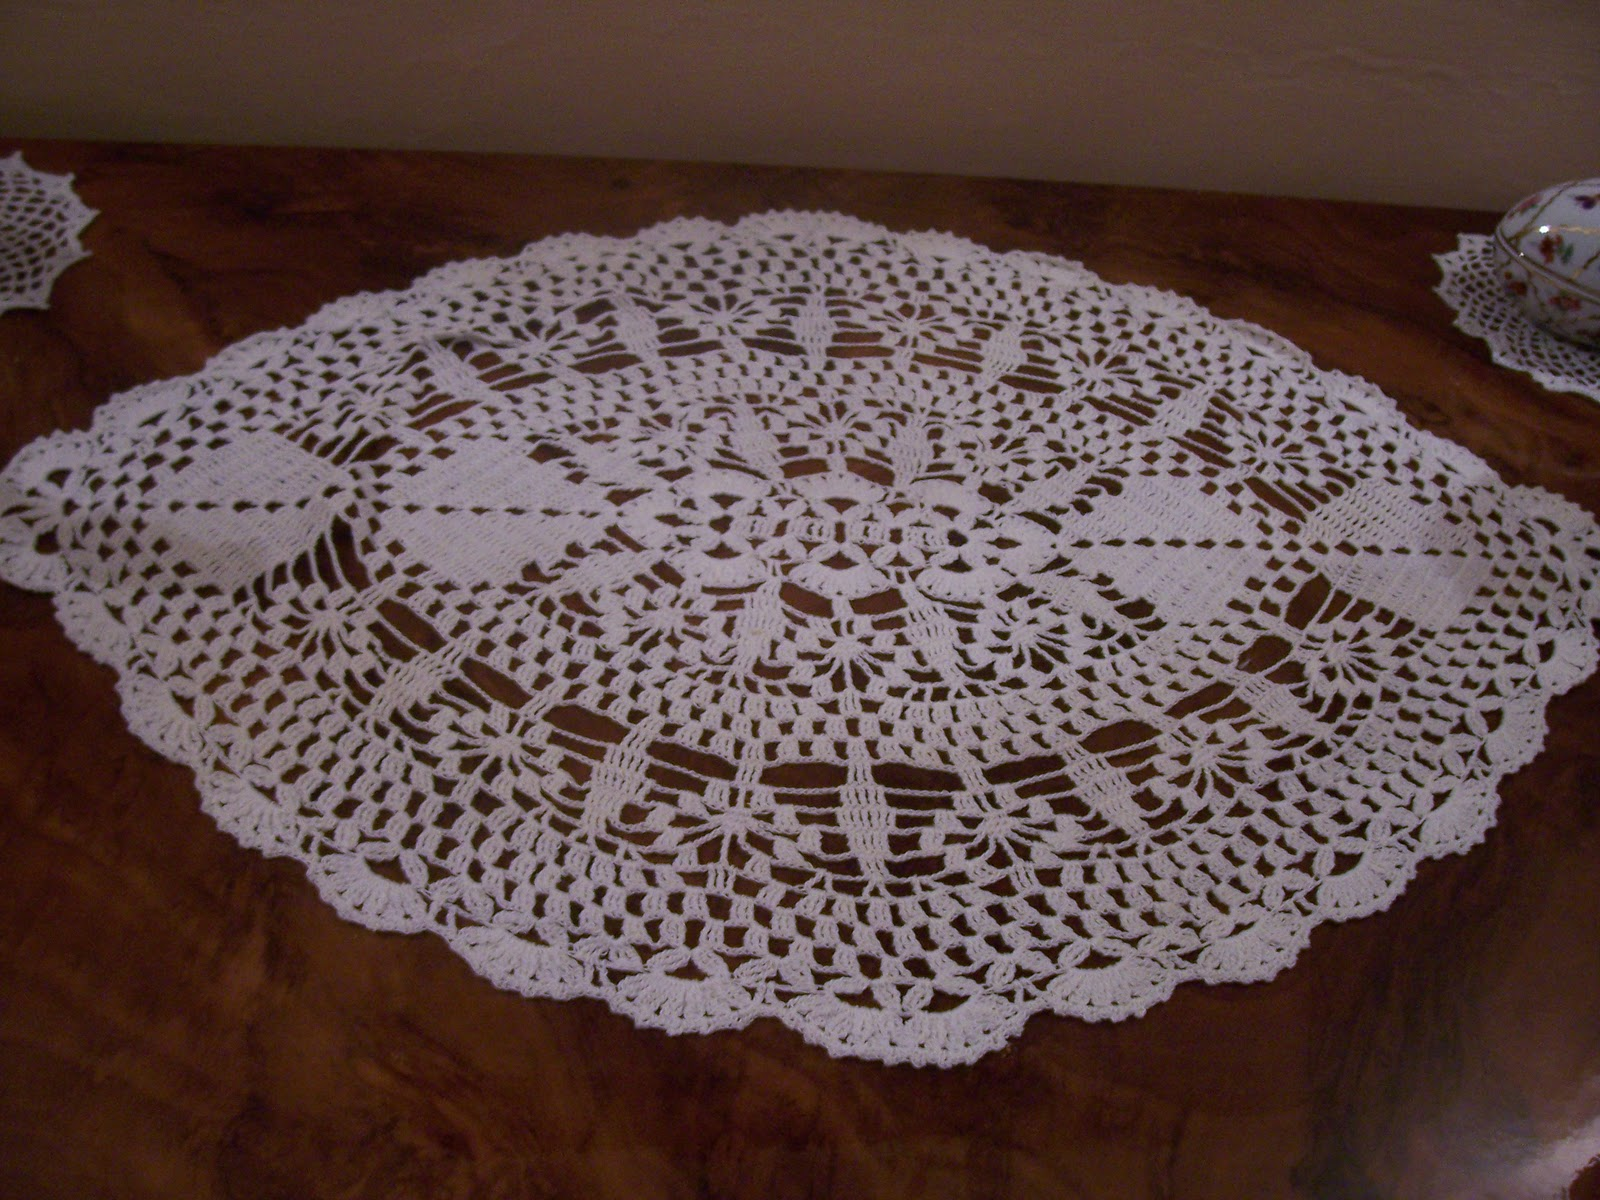 Free Crochet Projects : FREE OVAL DOILY PATTERNS TO CROCHET ? Patterns